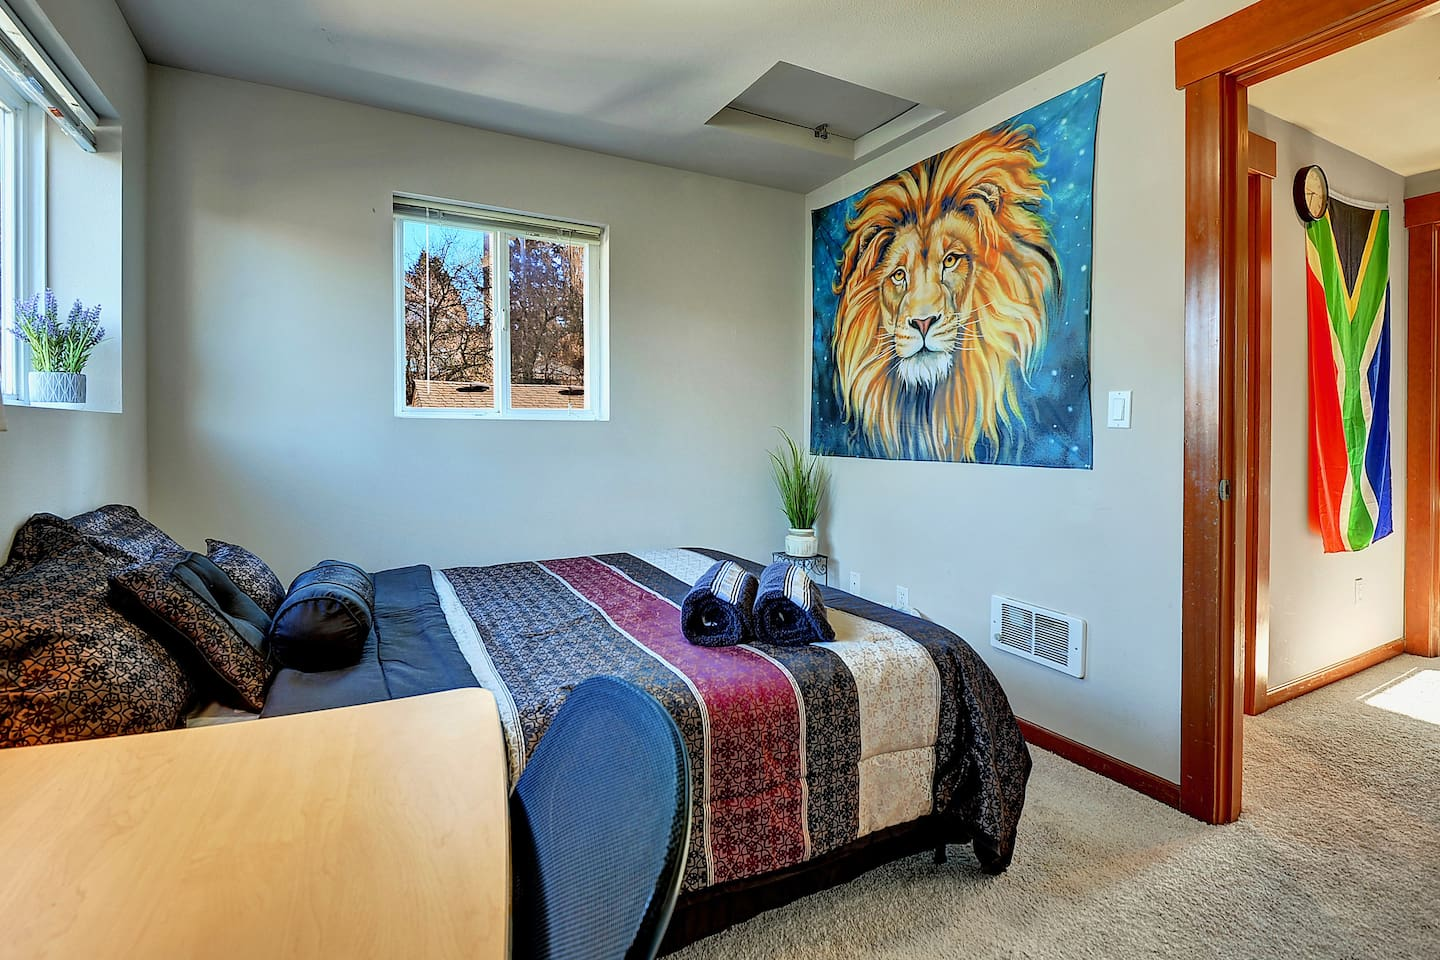 """I dubbed this room the """"Cosmic Lion"""" room, as a tribute to our friendly guardian big cat hanging from the wall. Fresh linens + a comfy queen sized bed = the best sleep you've had in a long time!"""